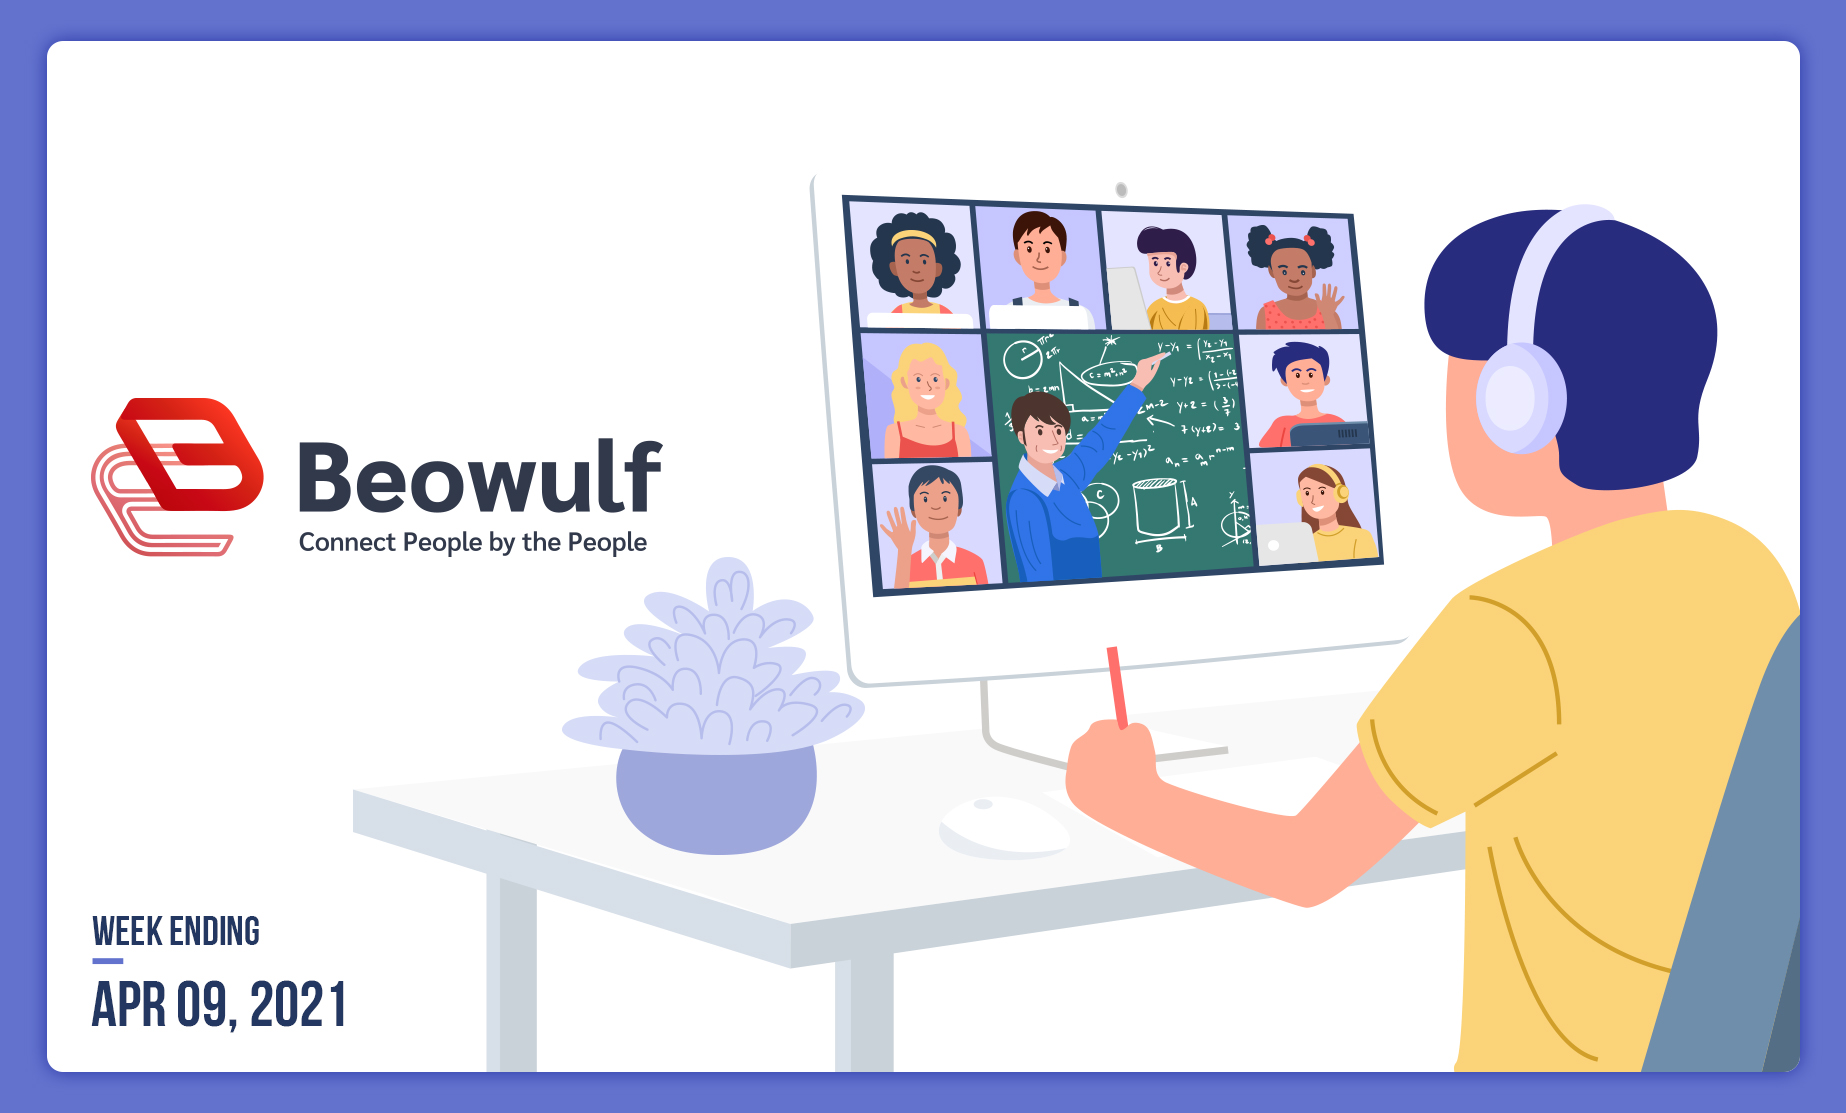 QUICKOM extends high-definition video collaboration for the academic communities around the world Beowulf Blockchain